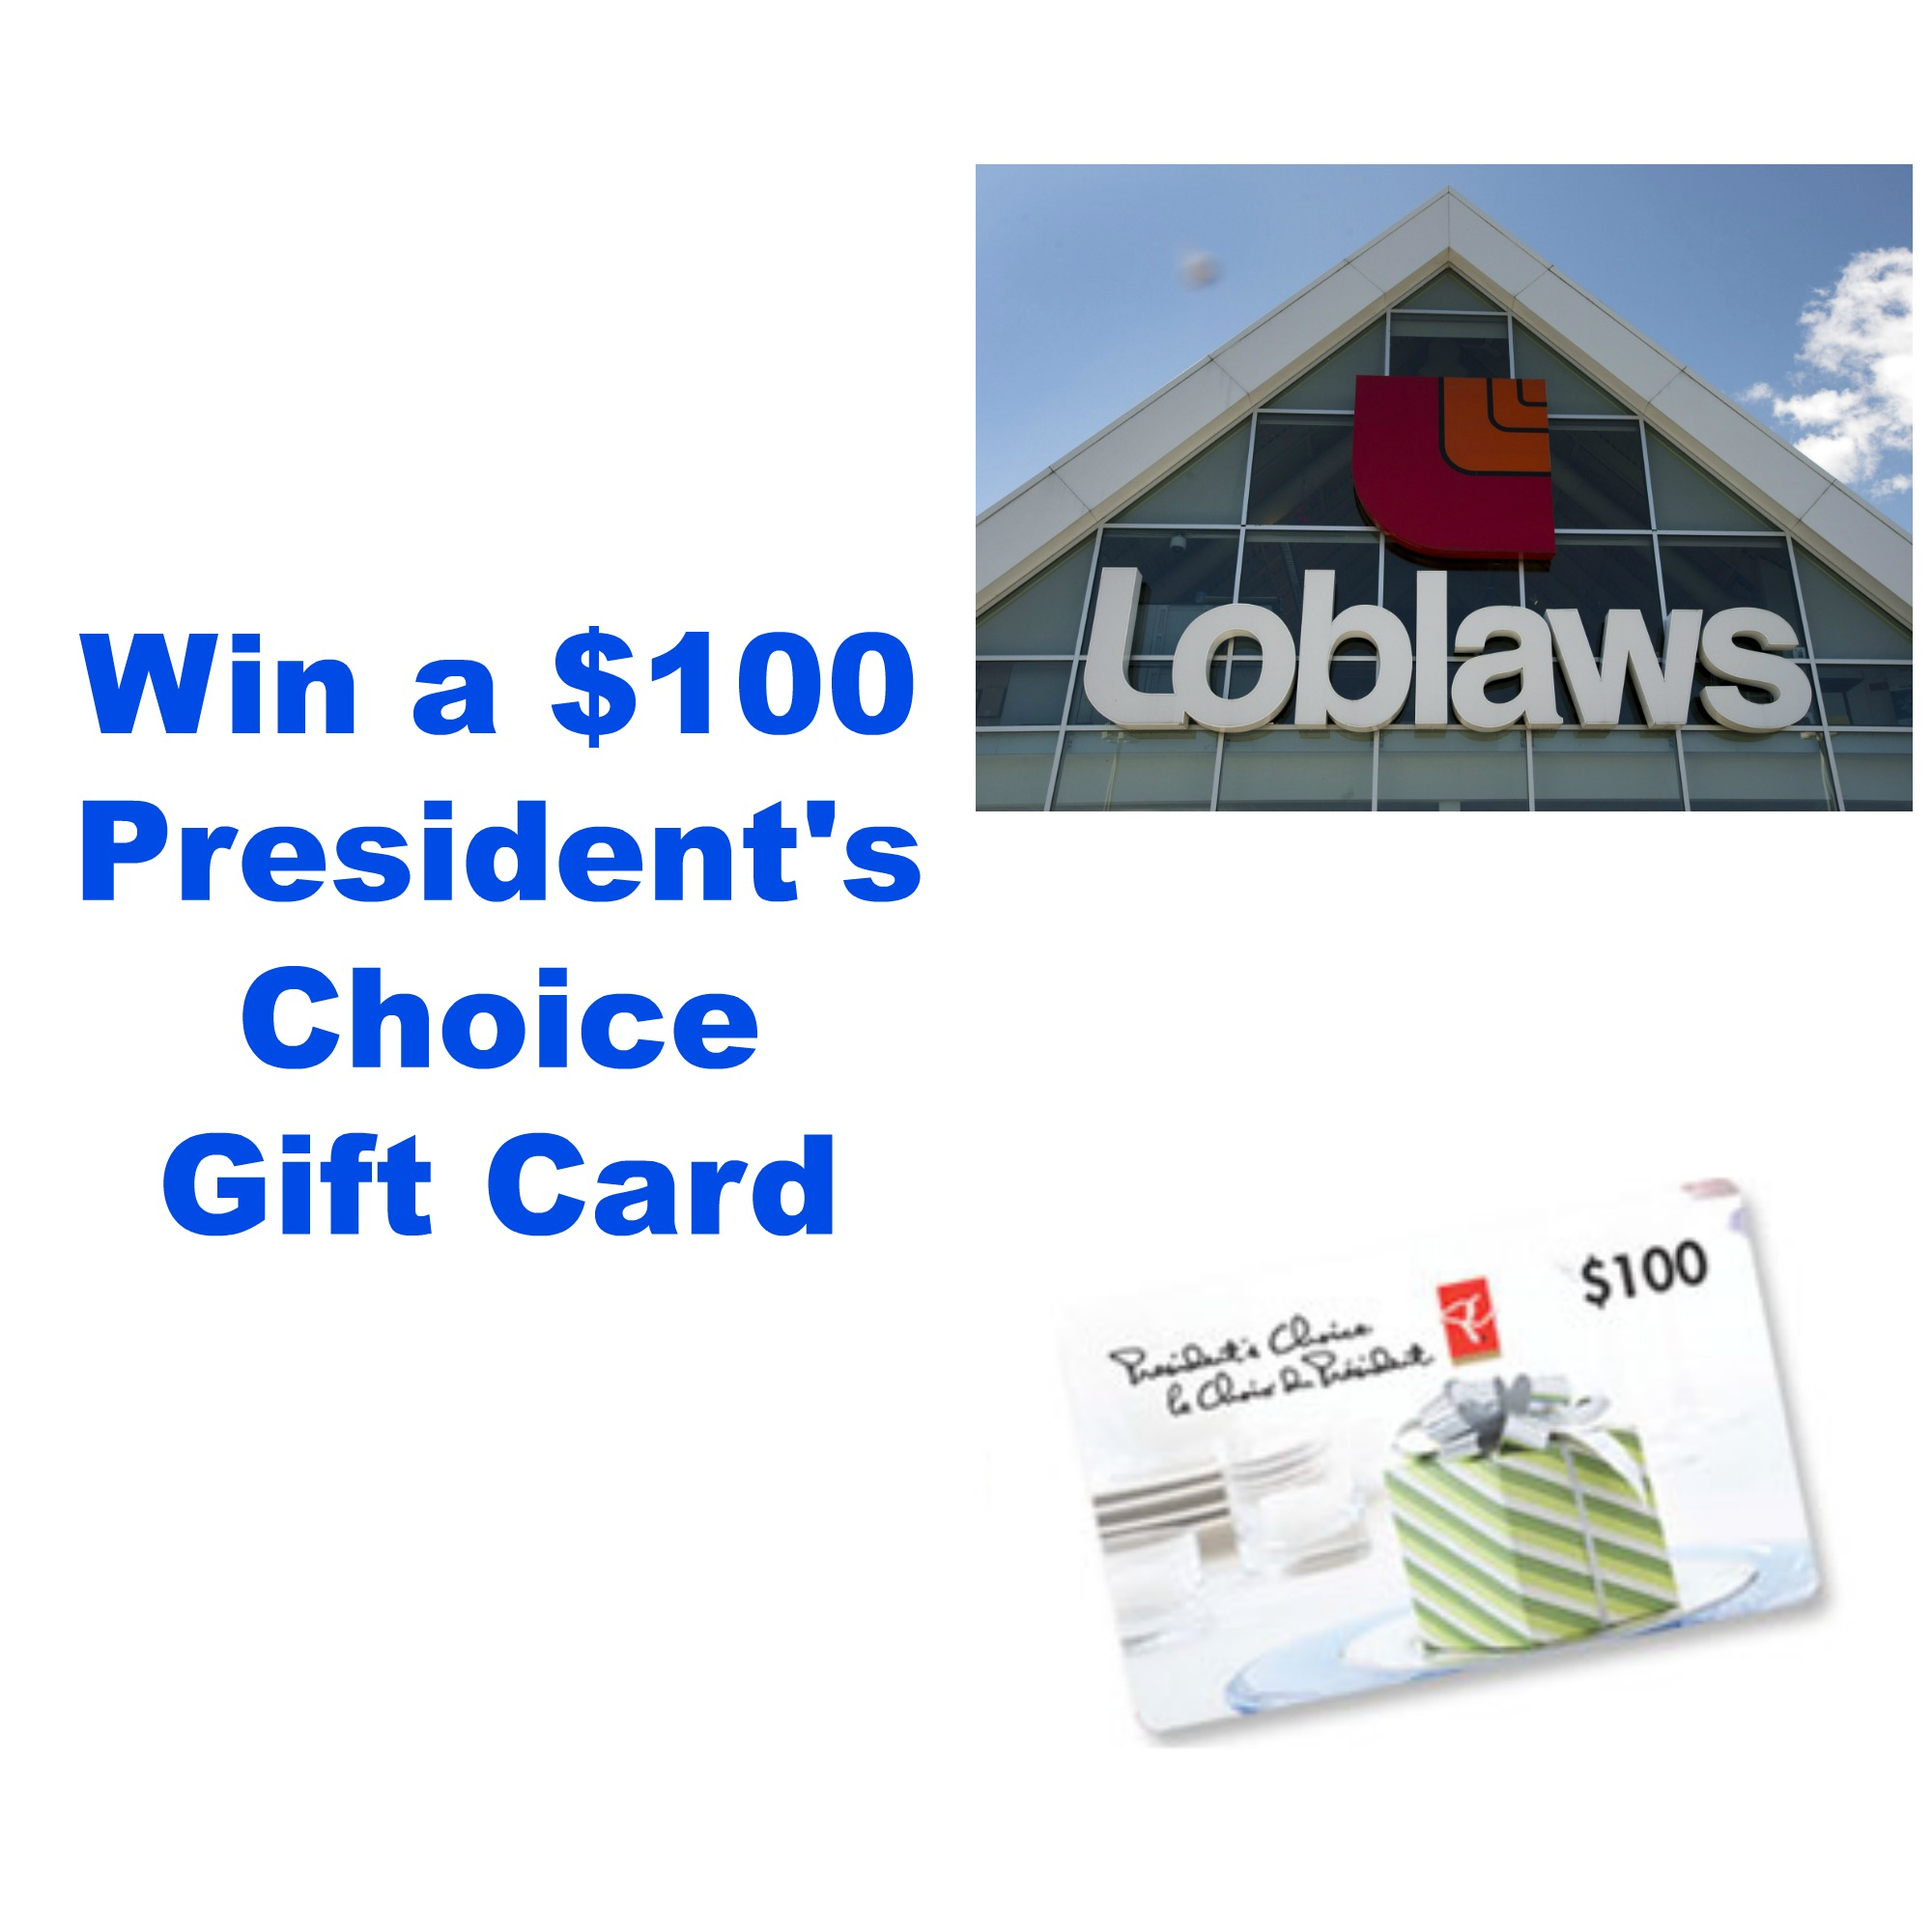 $100 PC GIFT CARD CONTEST